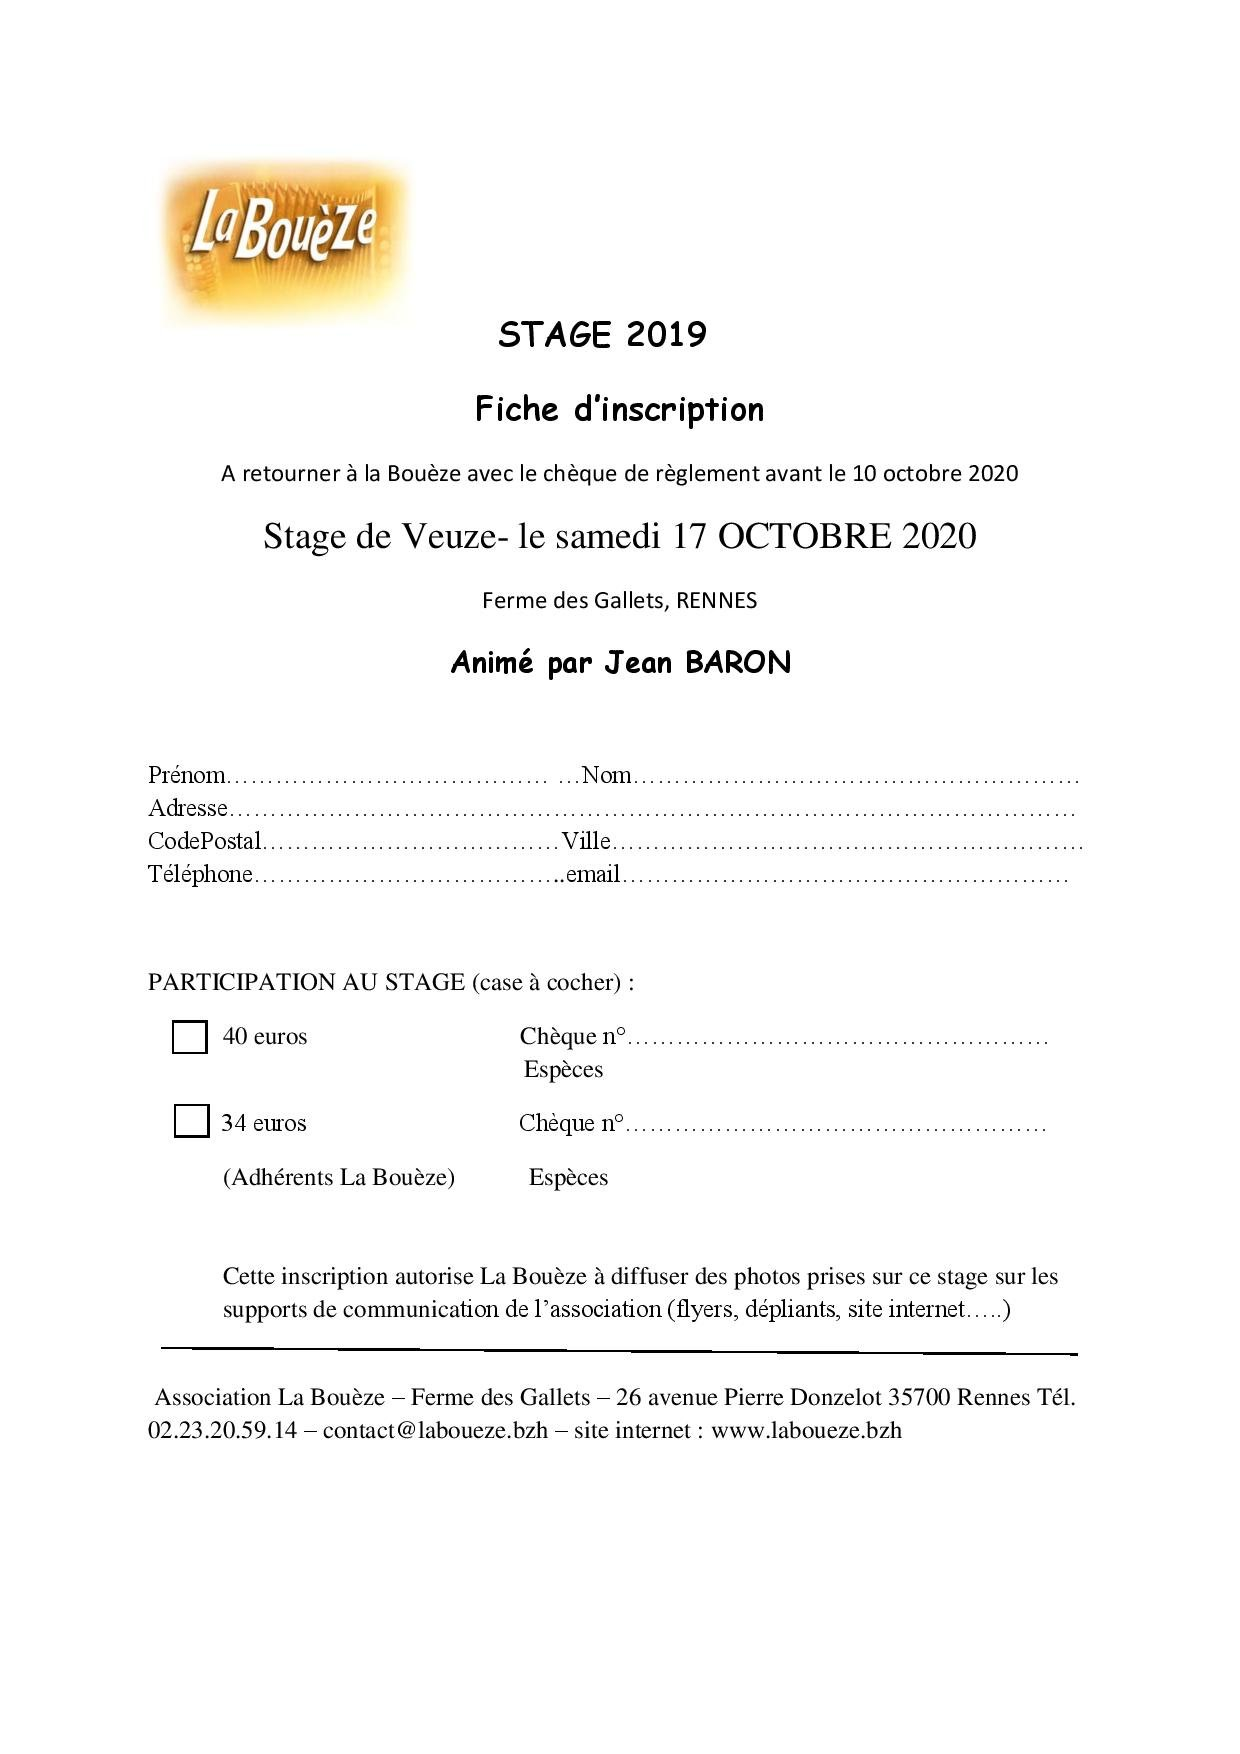 Fiche d inscription stage Jean BARON oct 20-page-001